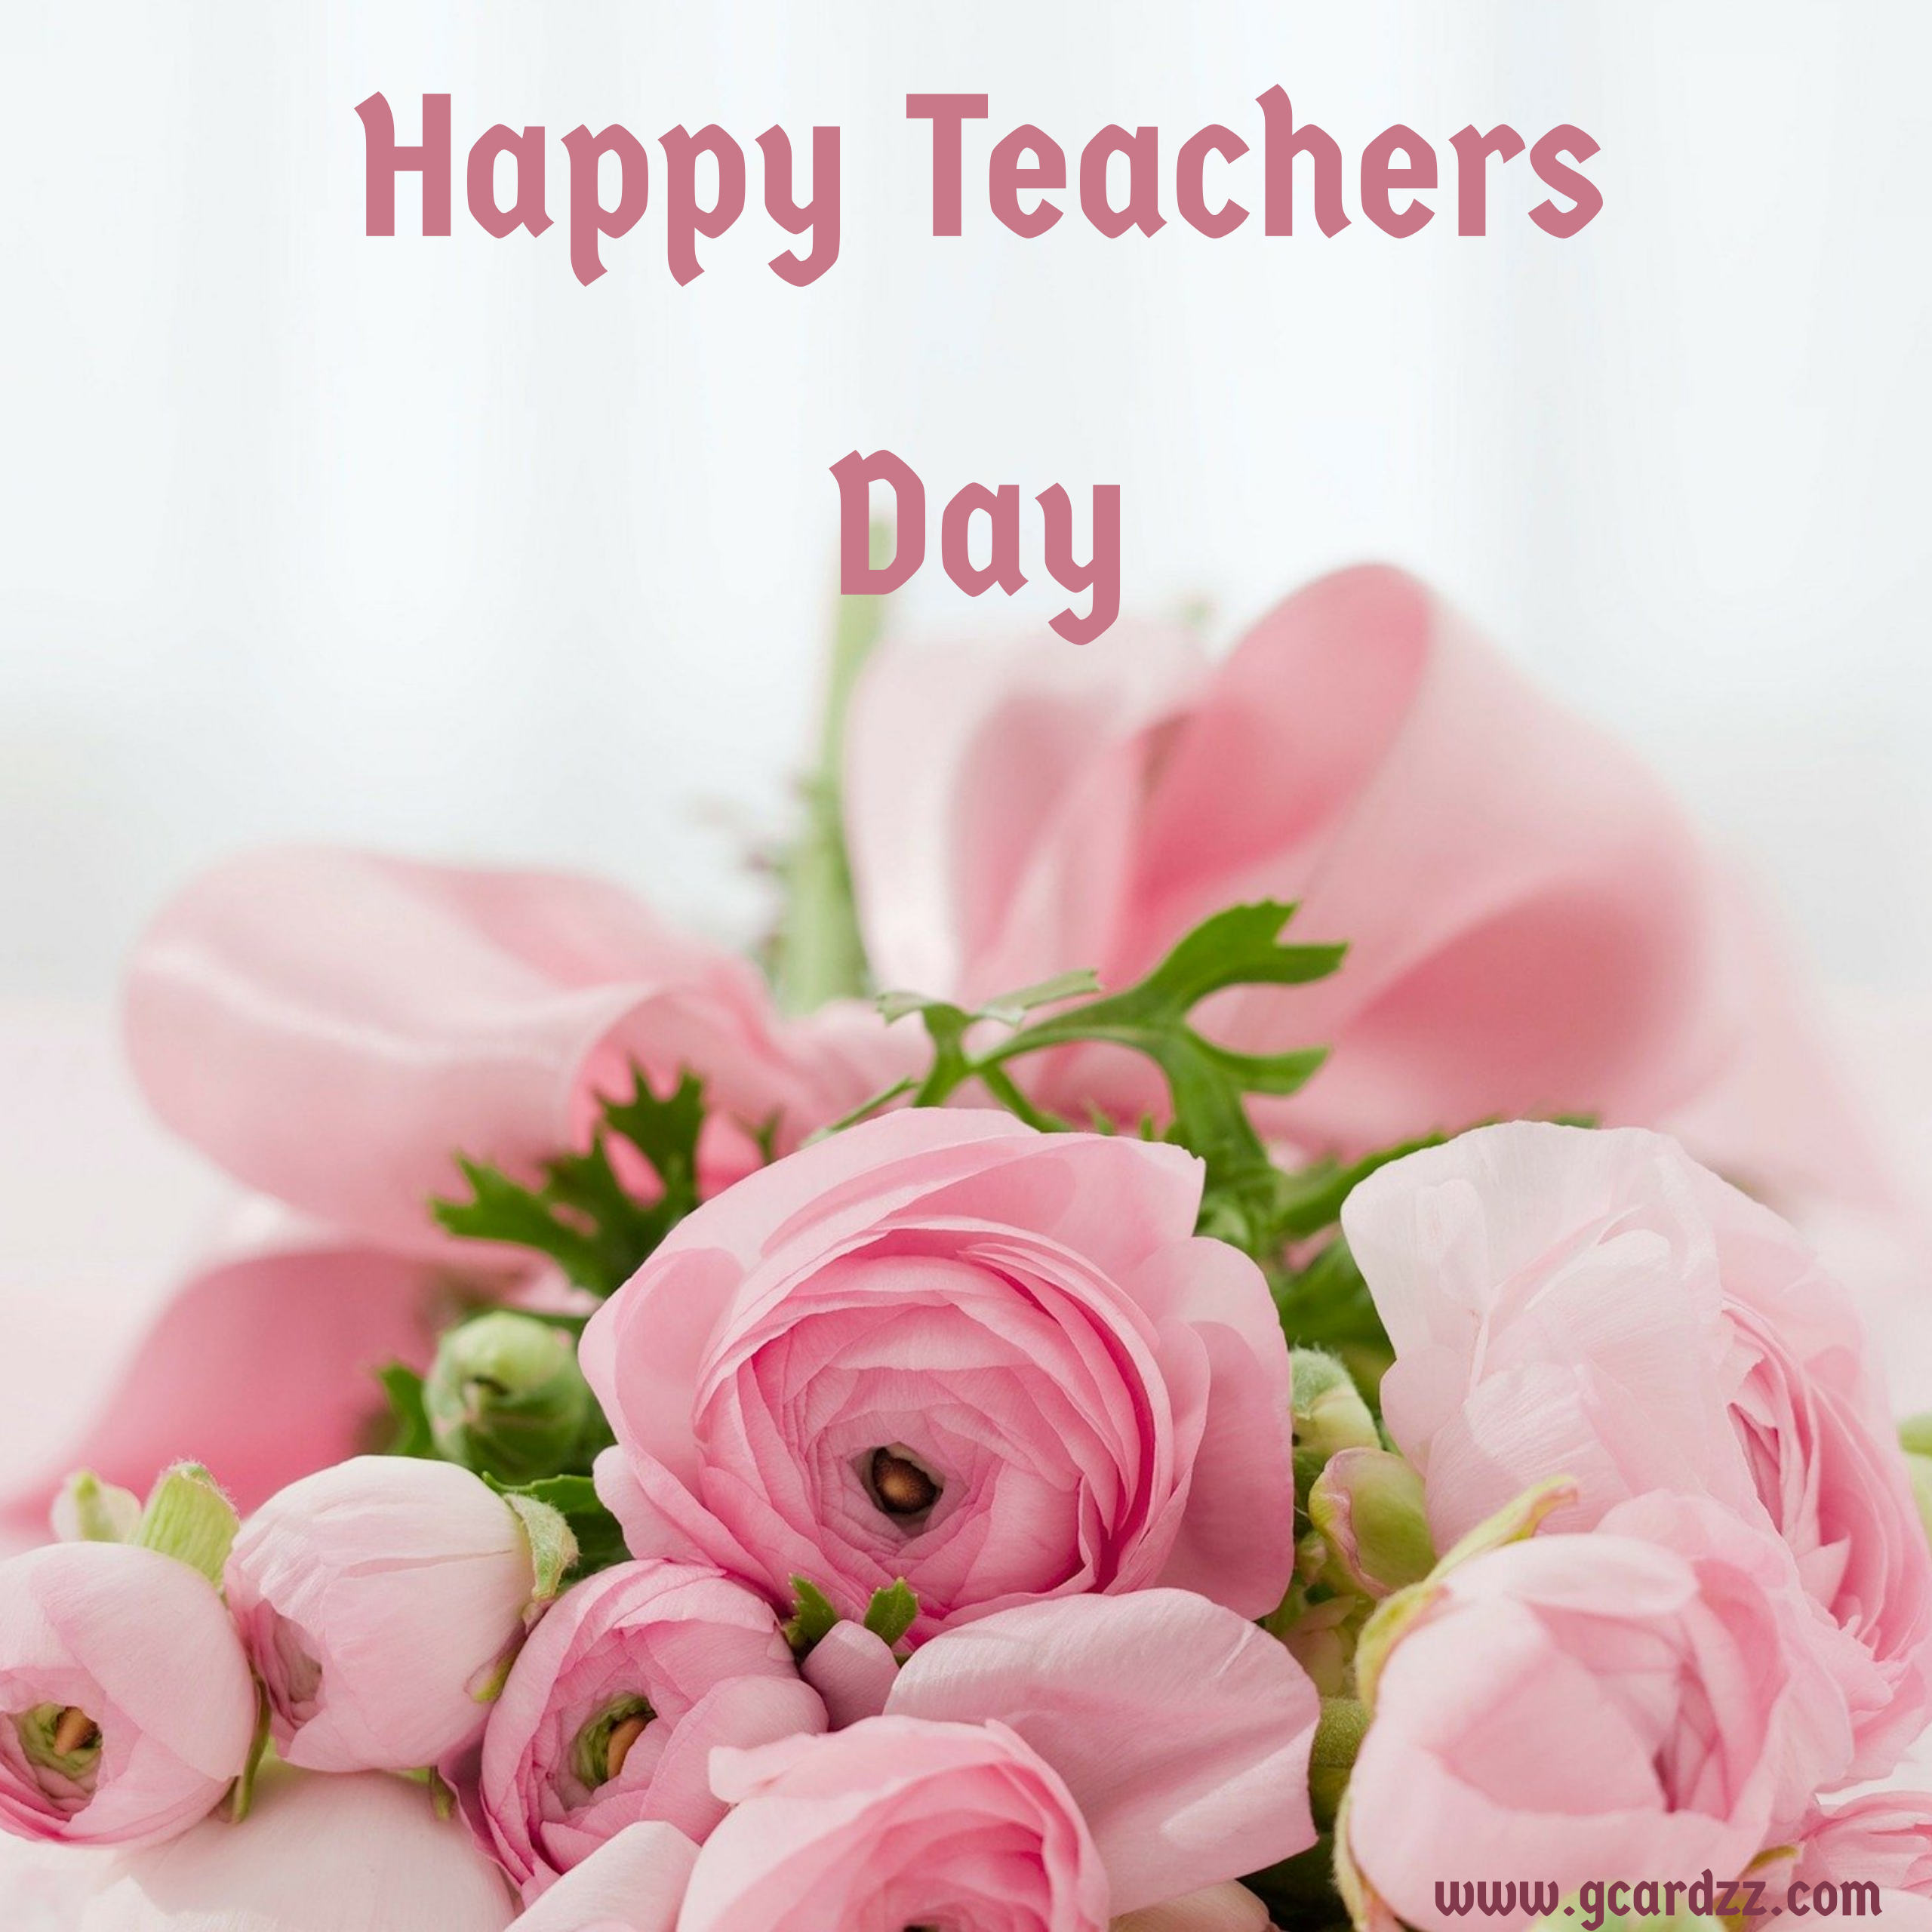 Happy Teachers Day Greeting Cards Images Download In 2020 Good Morning Flowers Happy Teachers Day Flowers